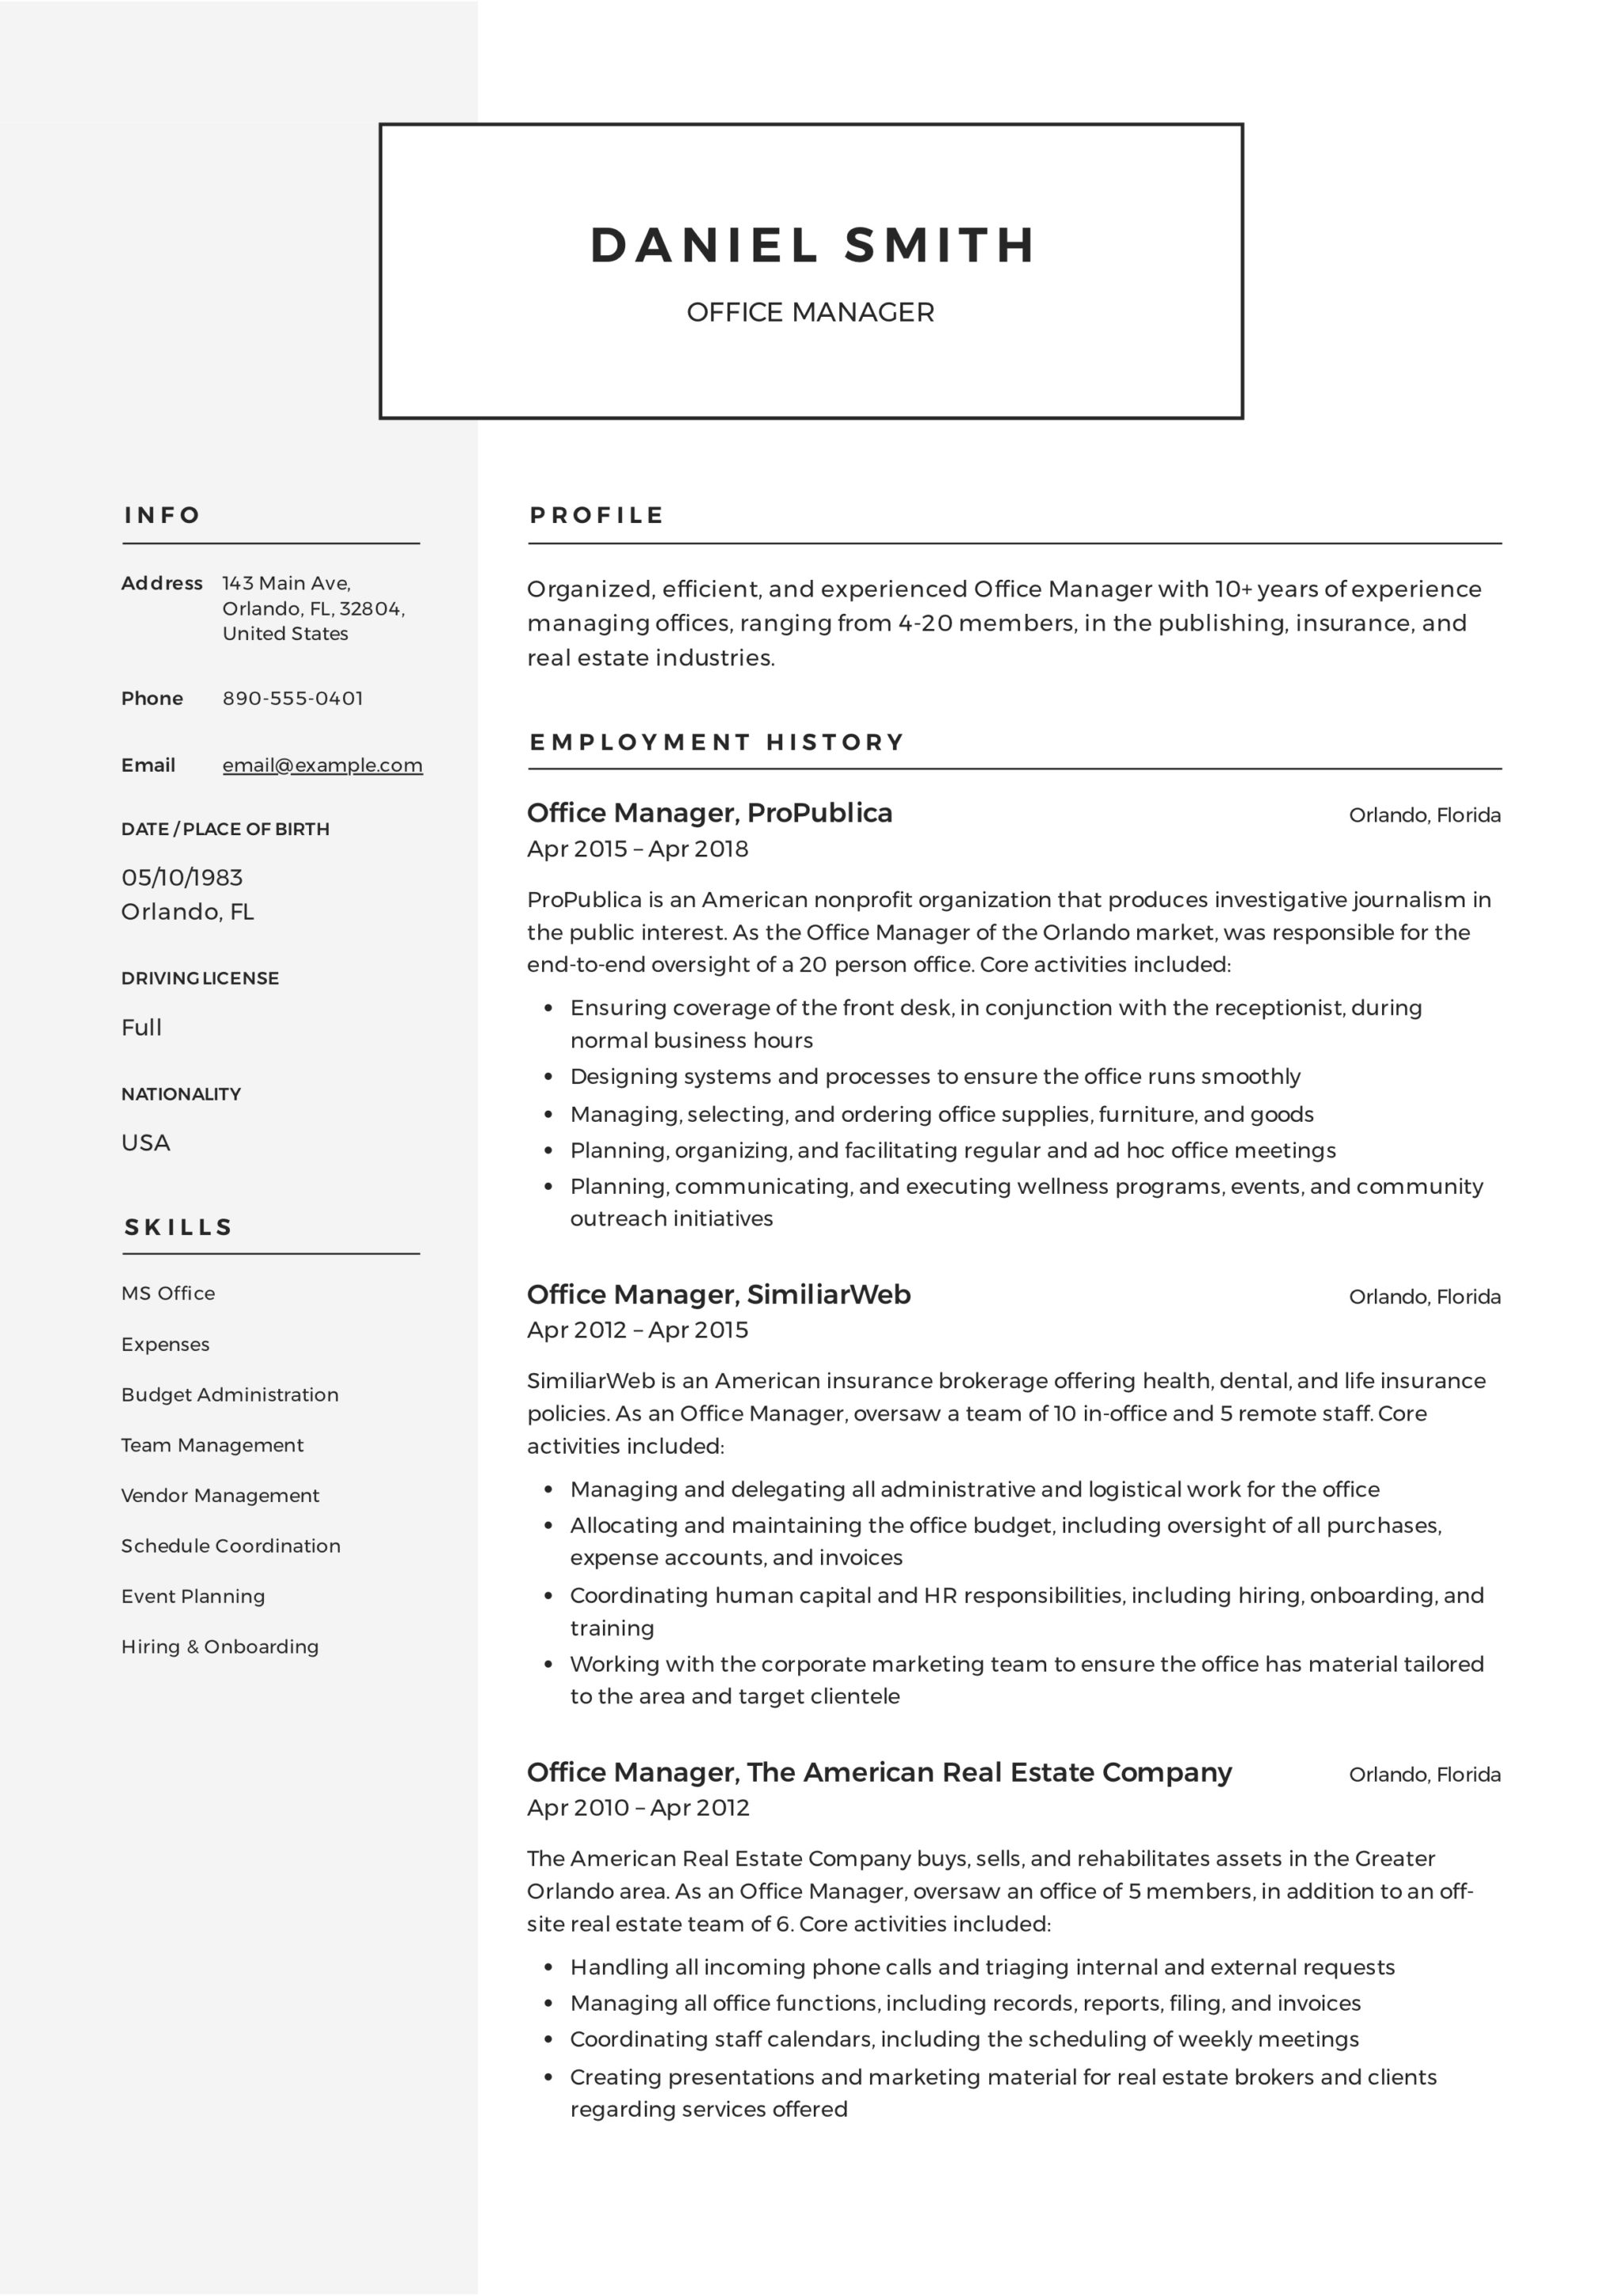 Office Manager Resume Guide 12 Samples Pdf 2020